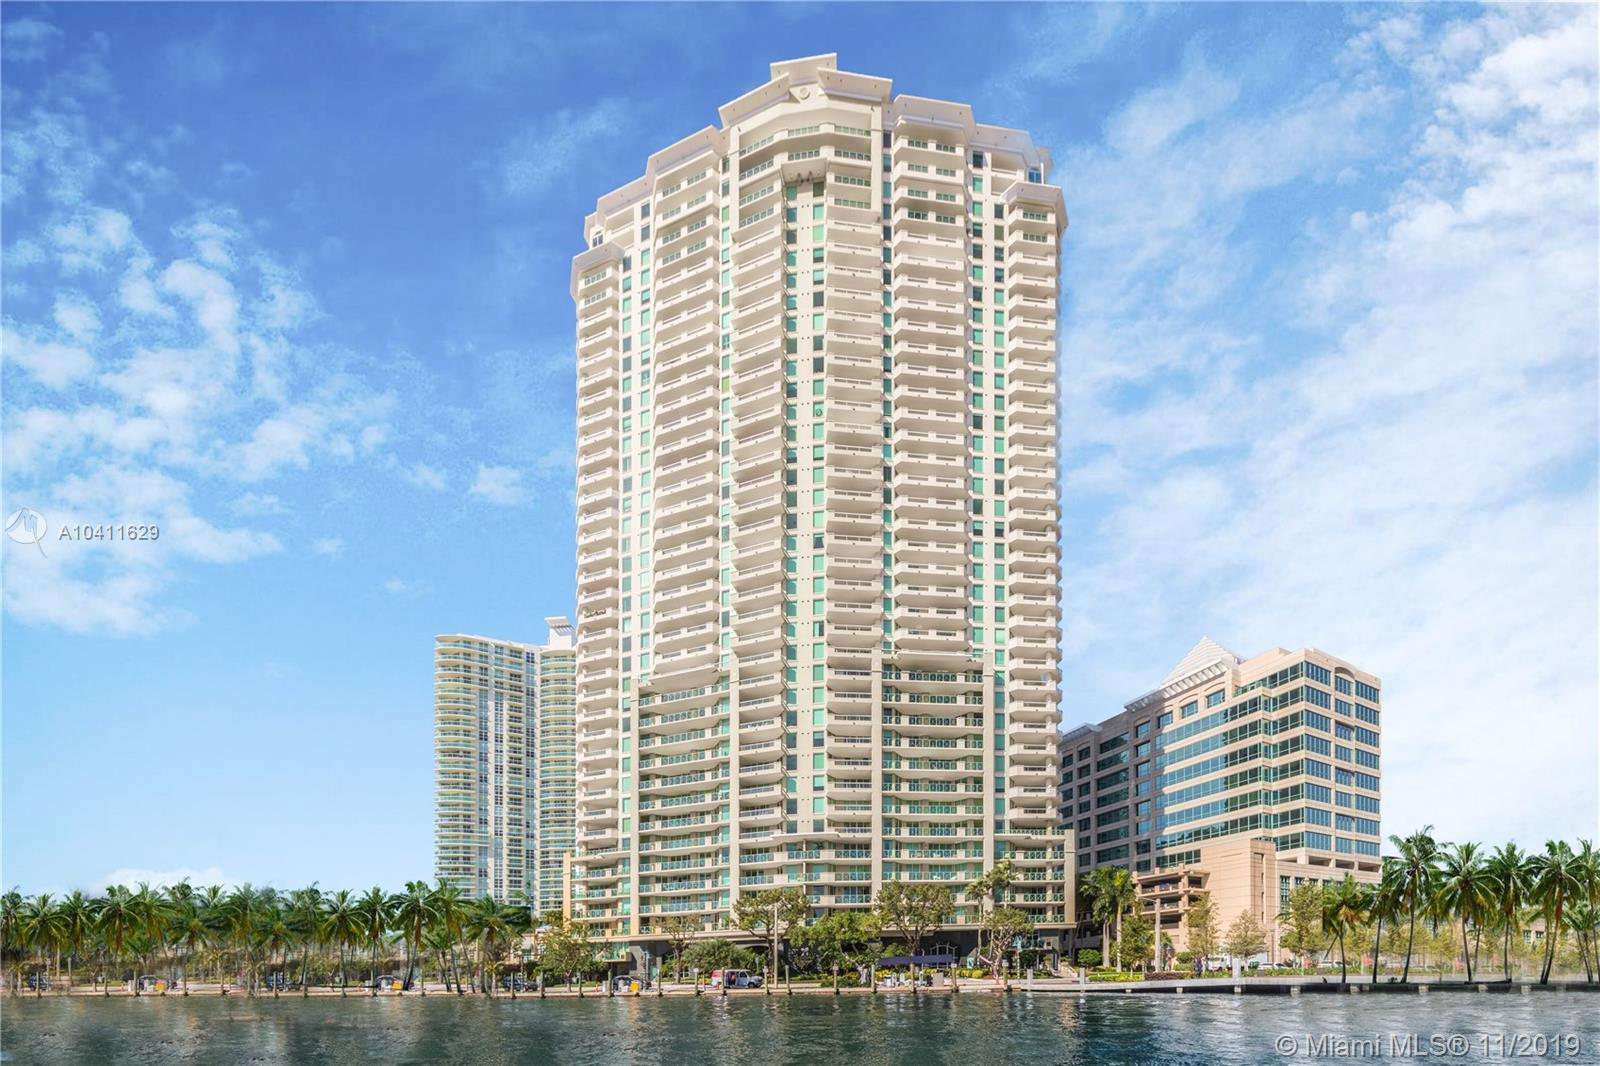 DUE TO COVID 19, PLEASE CALL LISTING AGENT FOR ADDITIONAL INFORMATION ON SHOWING  